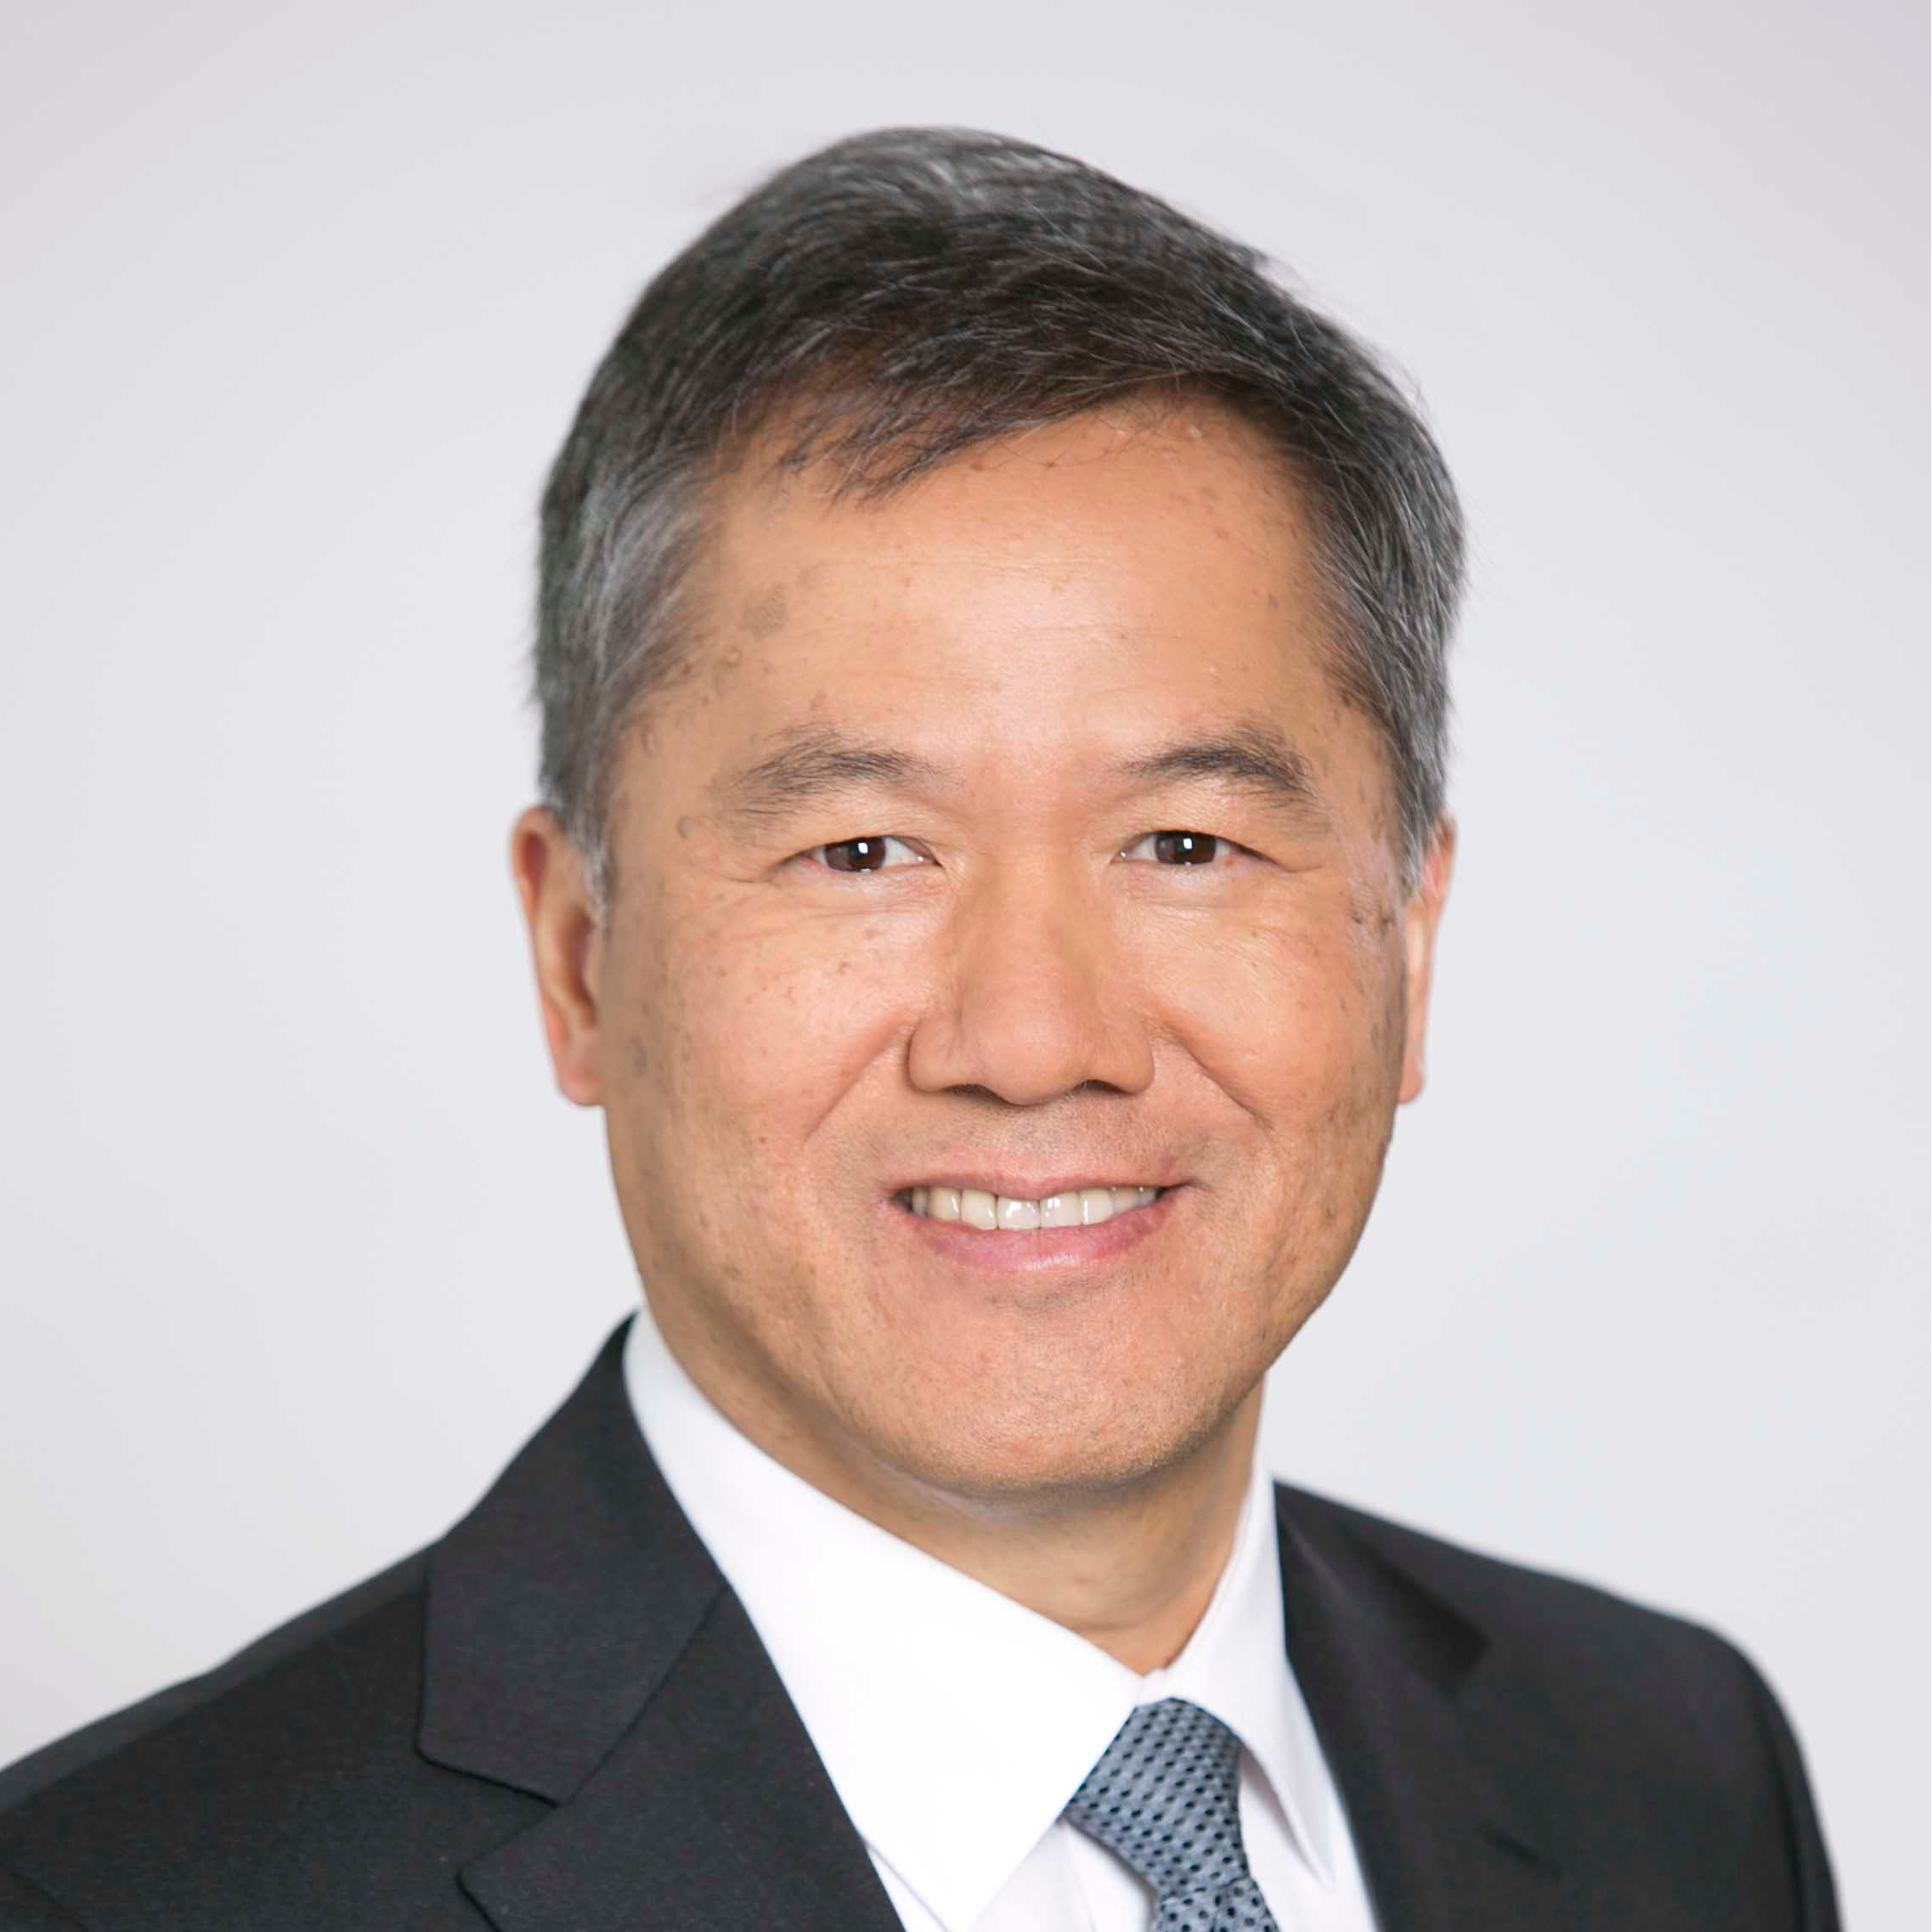 Martin Huang, Vice President, System Operations at HydroOne